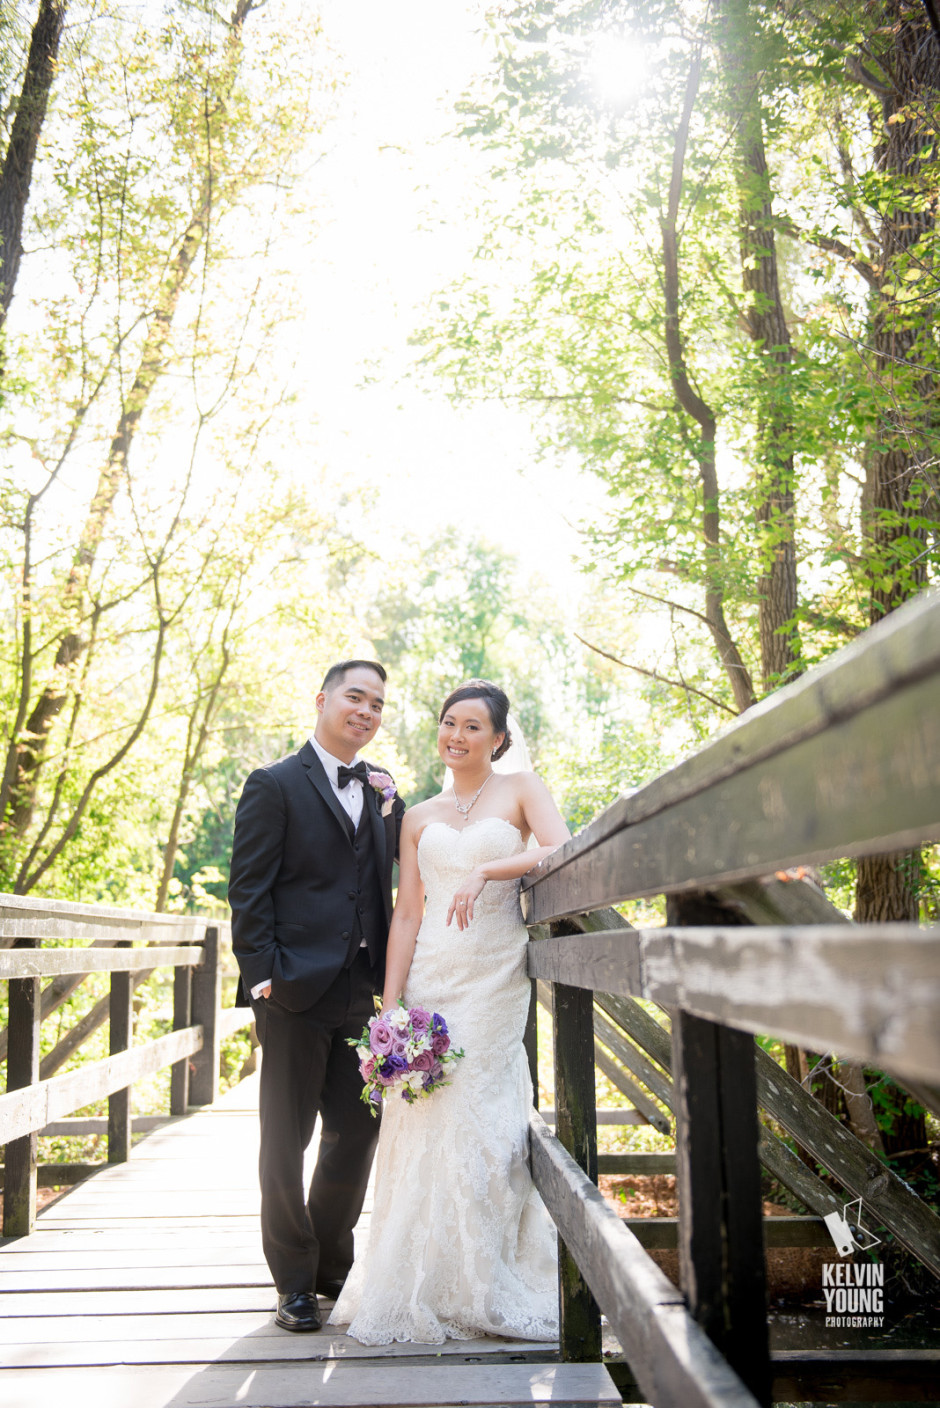 Joyce-Kelvin-Toronto-Markham-Wedding-Photography-024